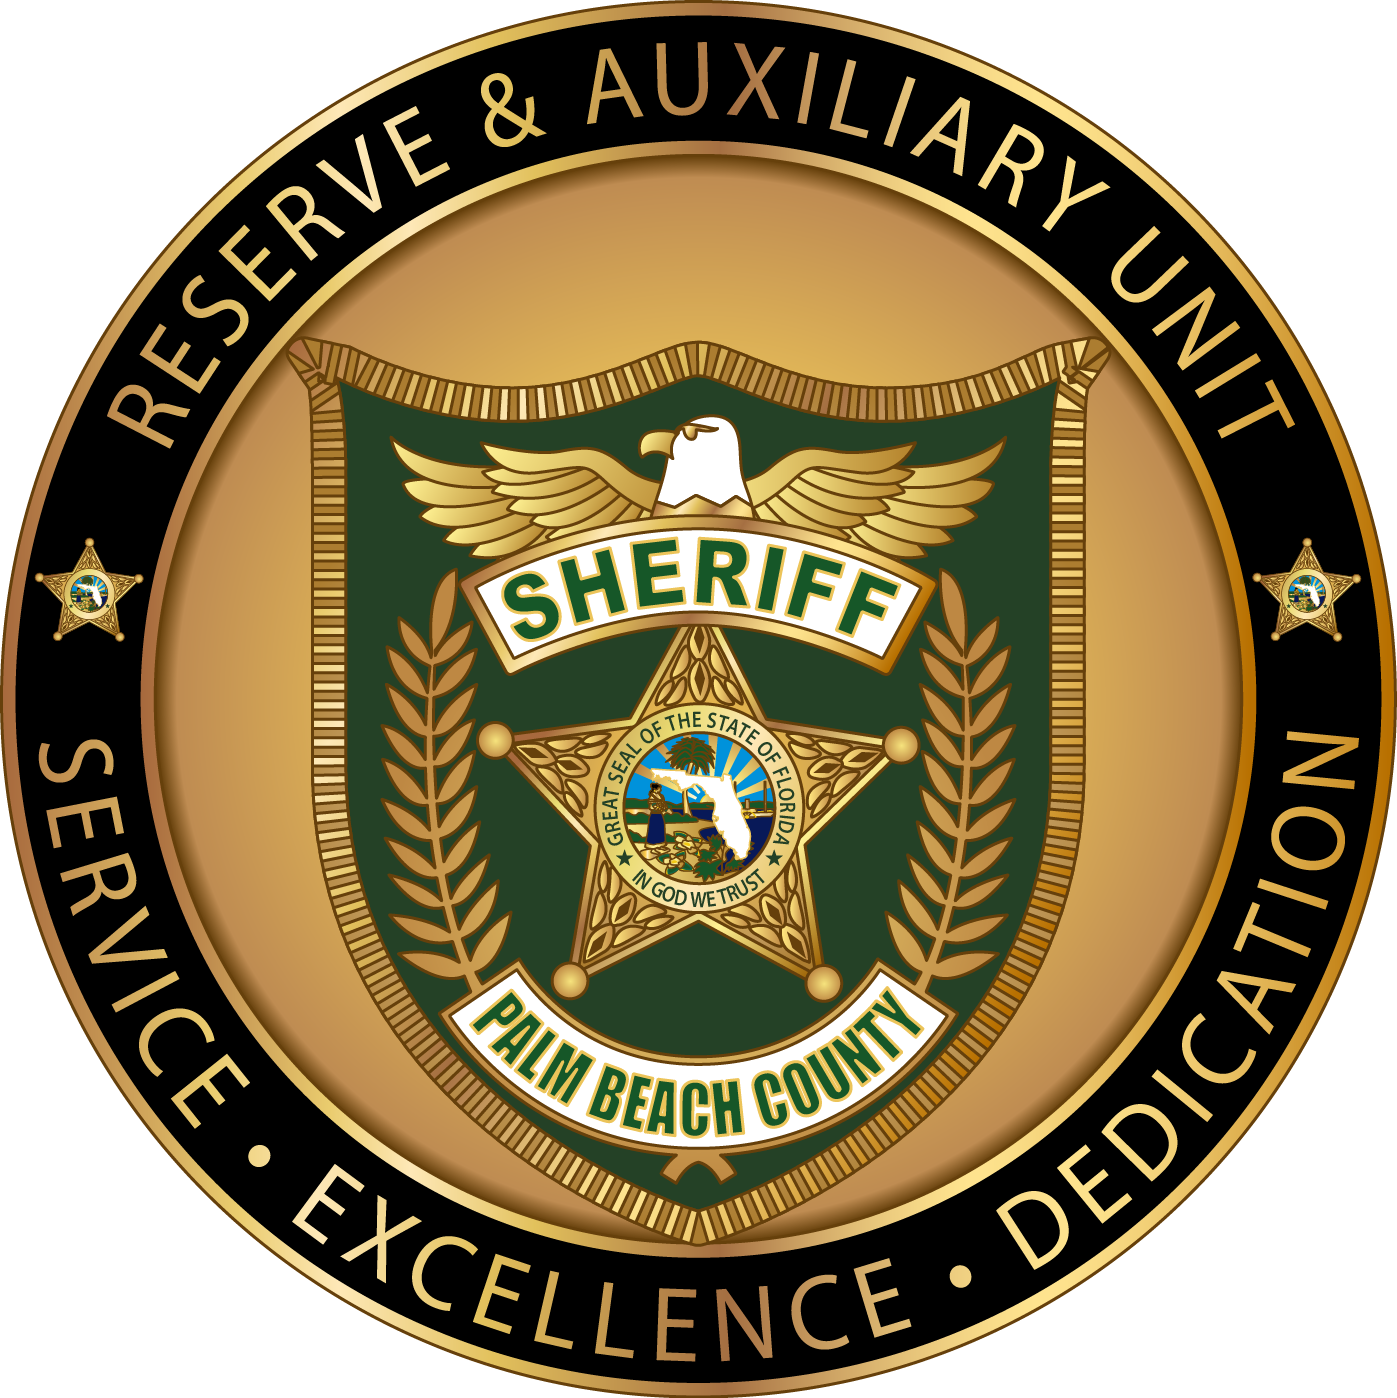 Reserve & Auxiliary Unit - Palm Beach County Sheriff's Office